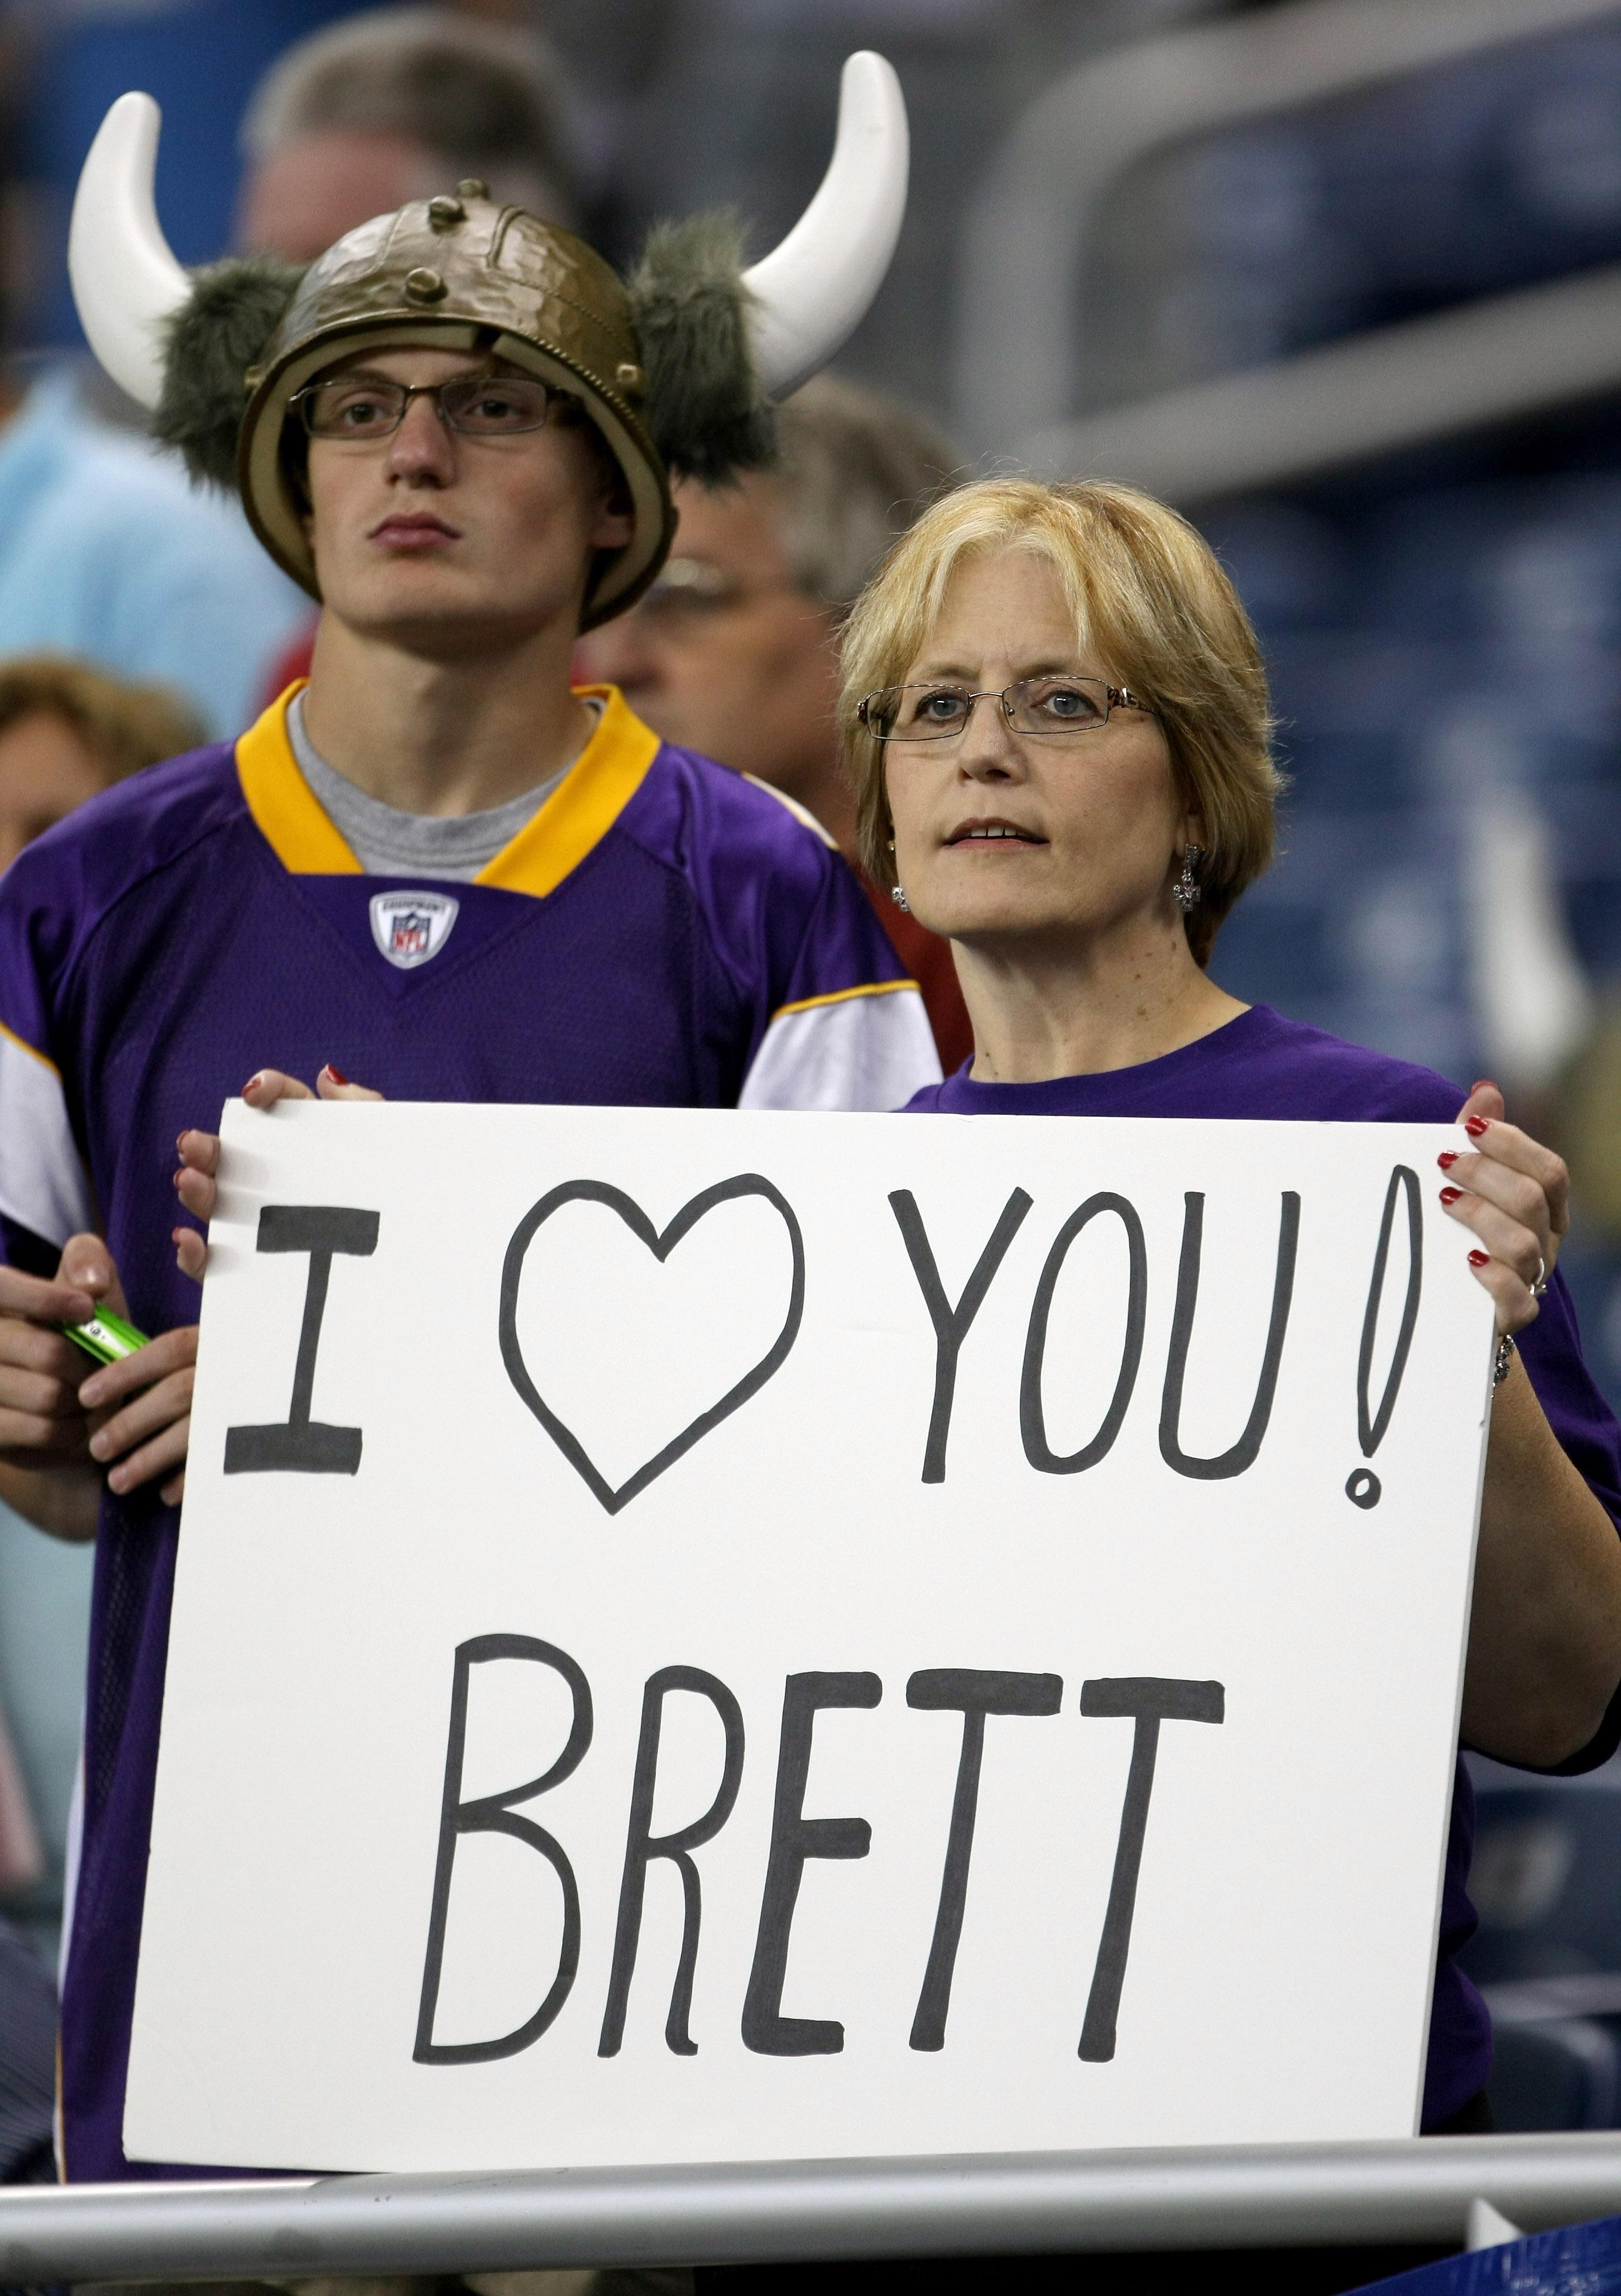 DETROIT - SEPTEMBER 20:  A Vikings fan holds a sign for Brett Favre of the Minnesota Vikings before the  game with the Detroit Lions at Ford Field on September 20, 2009 in Detroit, Michigan. (Photo by Stephen Dunn/Getty Images)